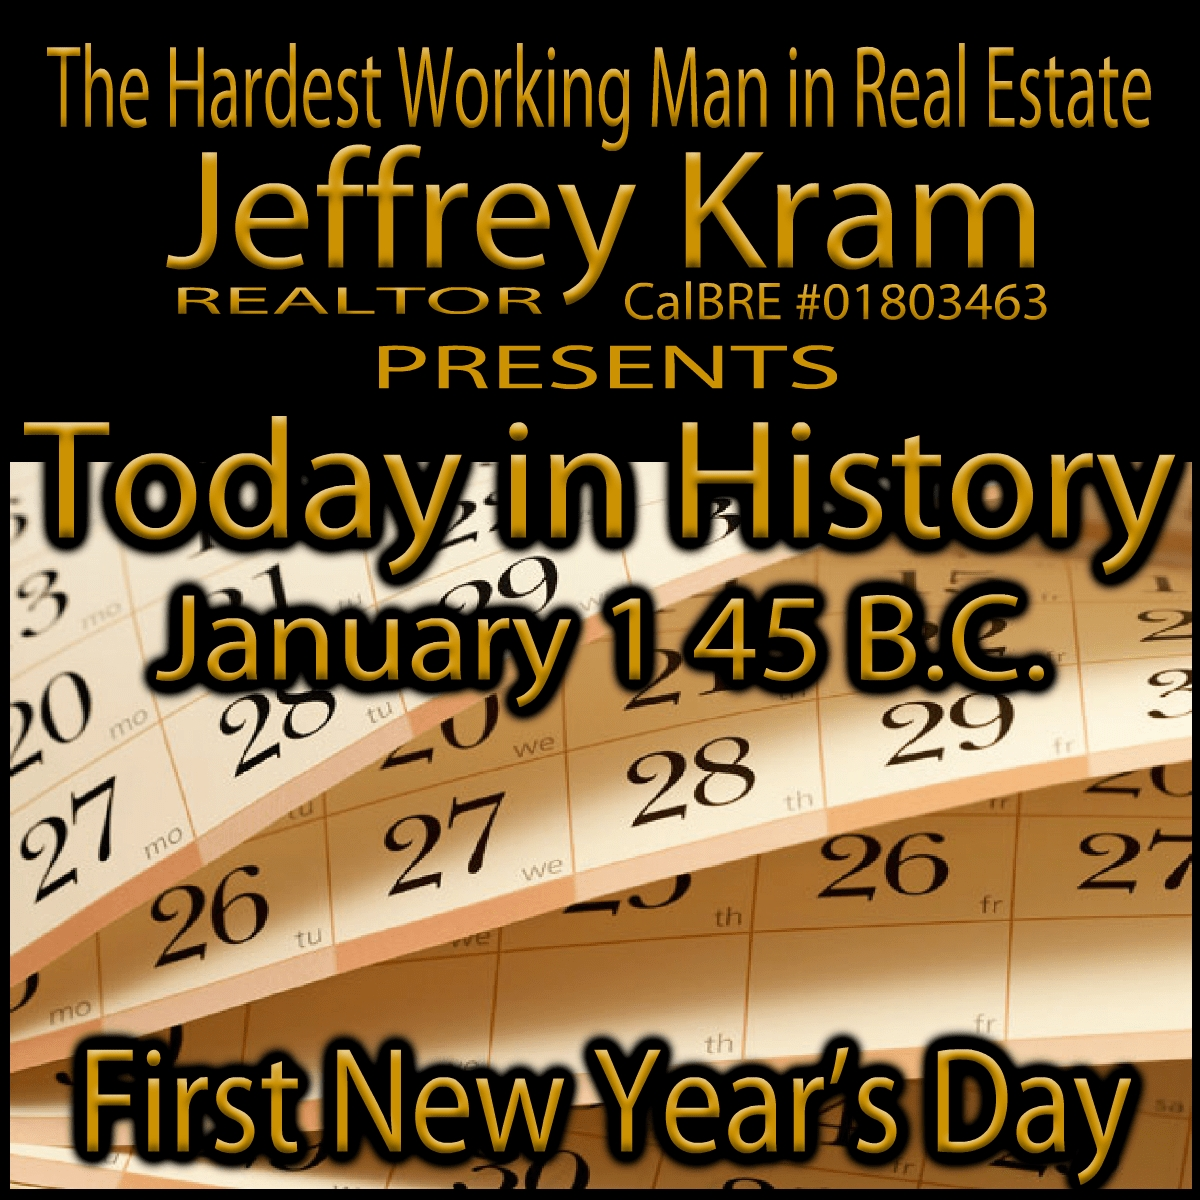 Today In History January 1 45 Bc | Today In History, History